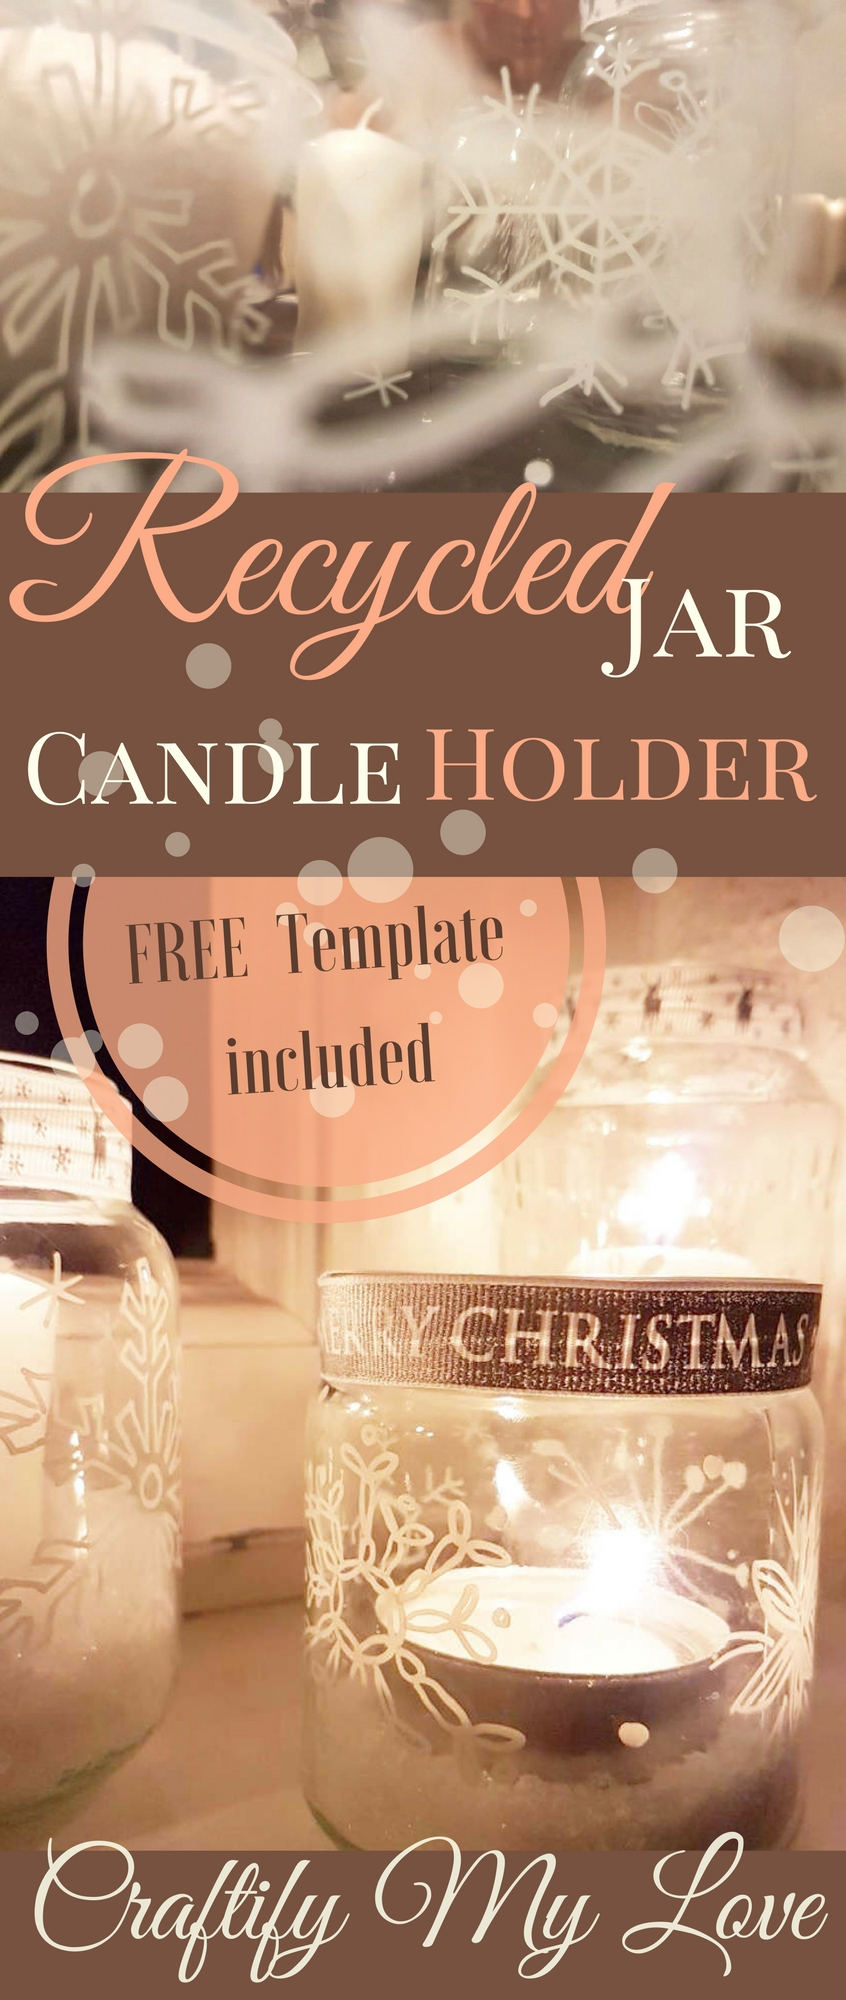 Empty jars turned into candle holders. Click and learn how to make this all white winter decor for your happy home. Includes FREE TEMPLATE| #sharpies #sharpieart #winterdecor #happyhome #DIY #seasonalcrafts #recyclingproject #candleholder #white #decorate #create #freeprintable